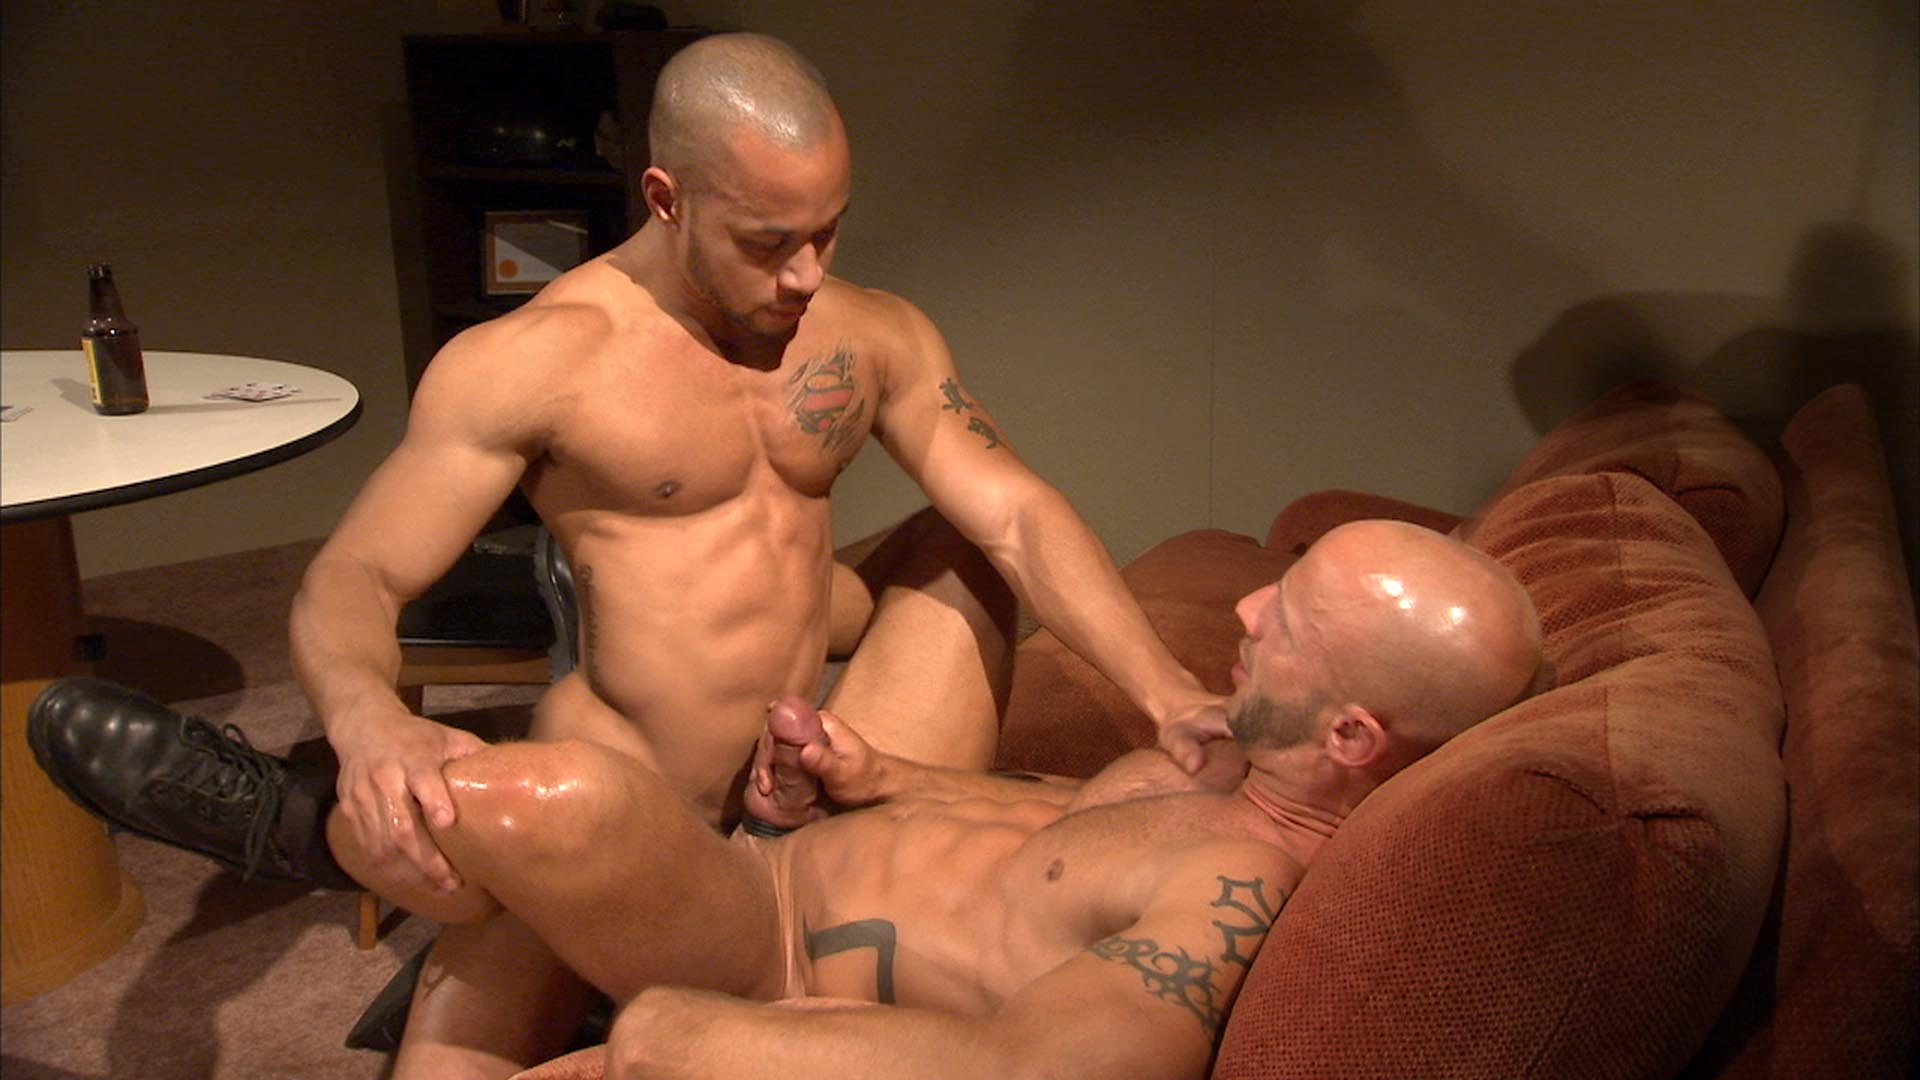 TitanMen Exclusive Aymeric DeVille with Lawson Kane - Game On! Scene 2